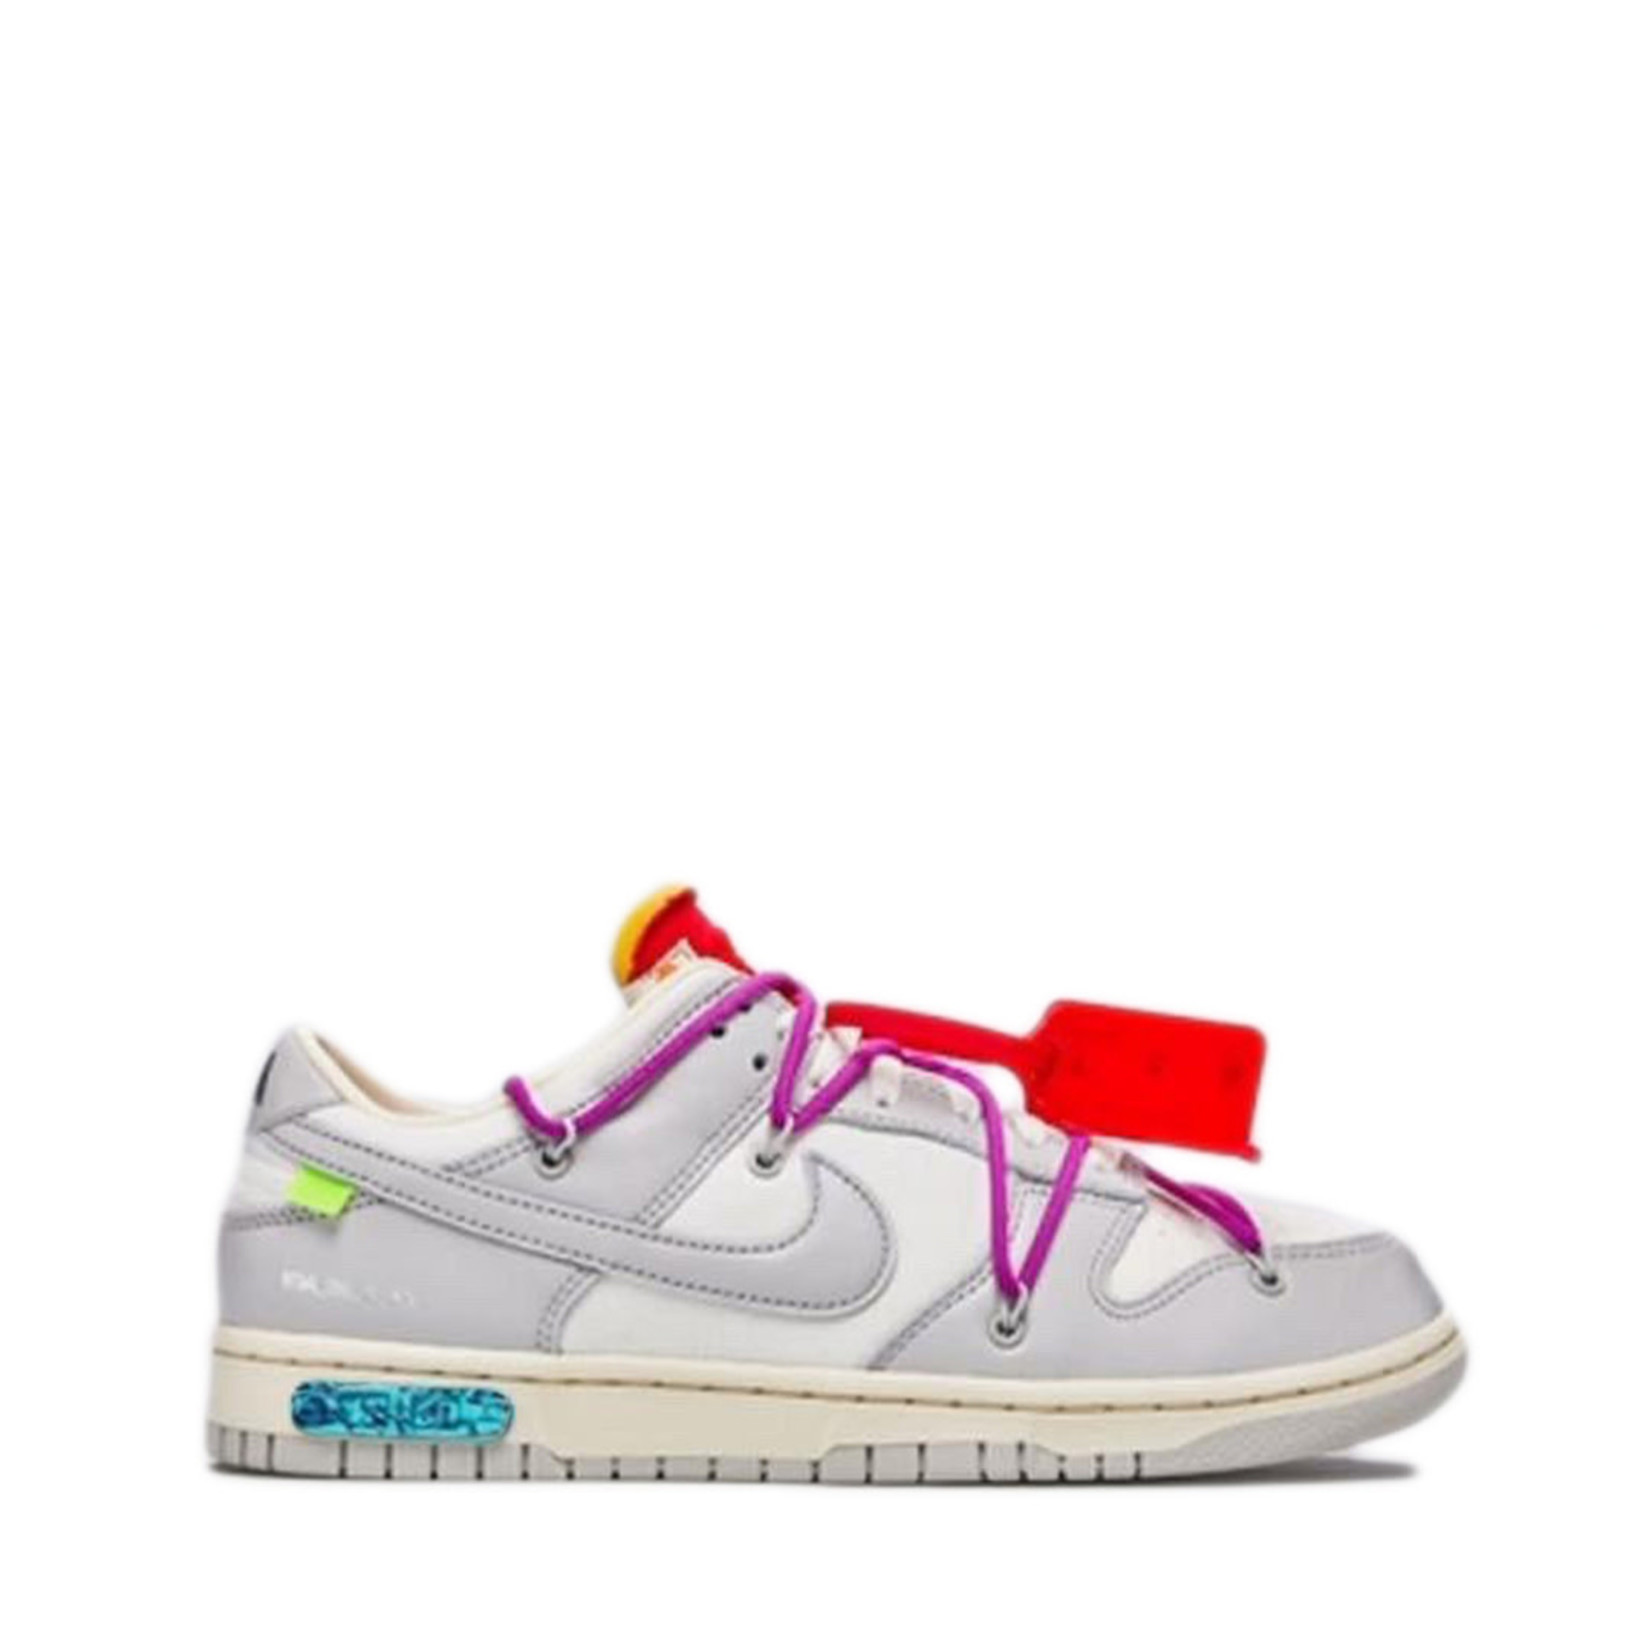 Off-White Nike Dunk Low Off-White Lot 45